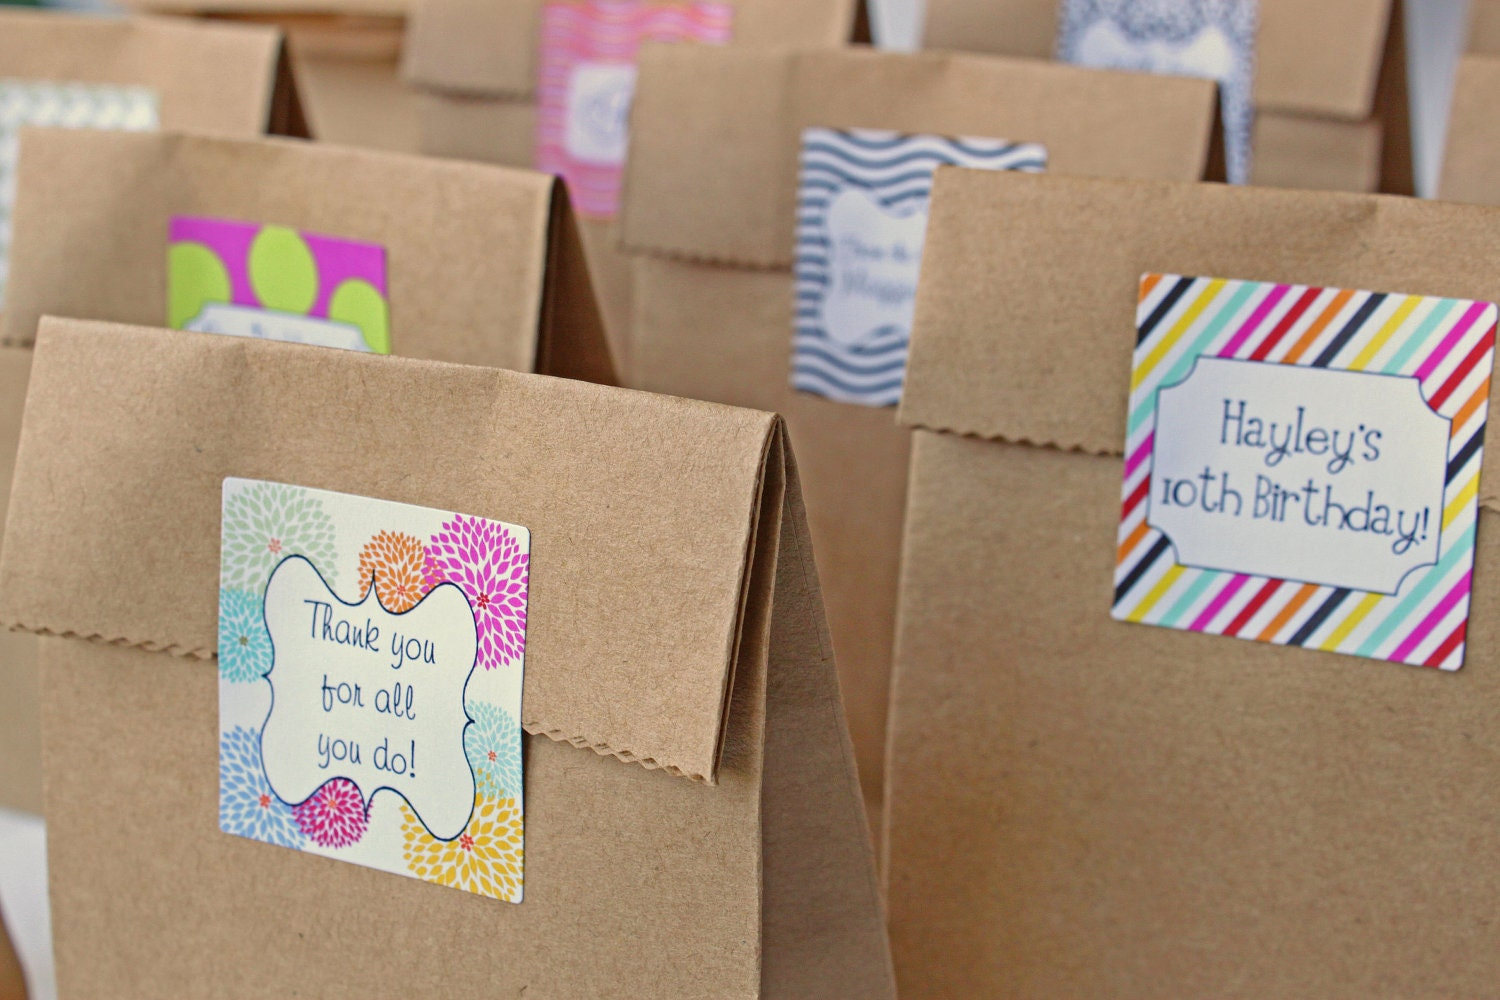 Wedding Goodie Bags Ideas : Custom Party Favor Stickers Goodie Bag Stickers Wedding Favor